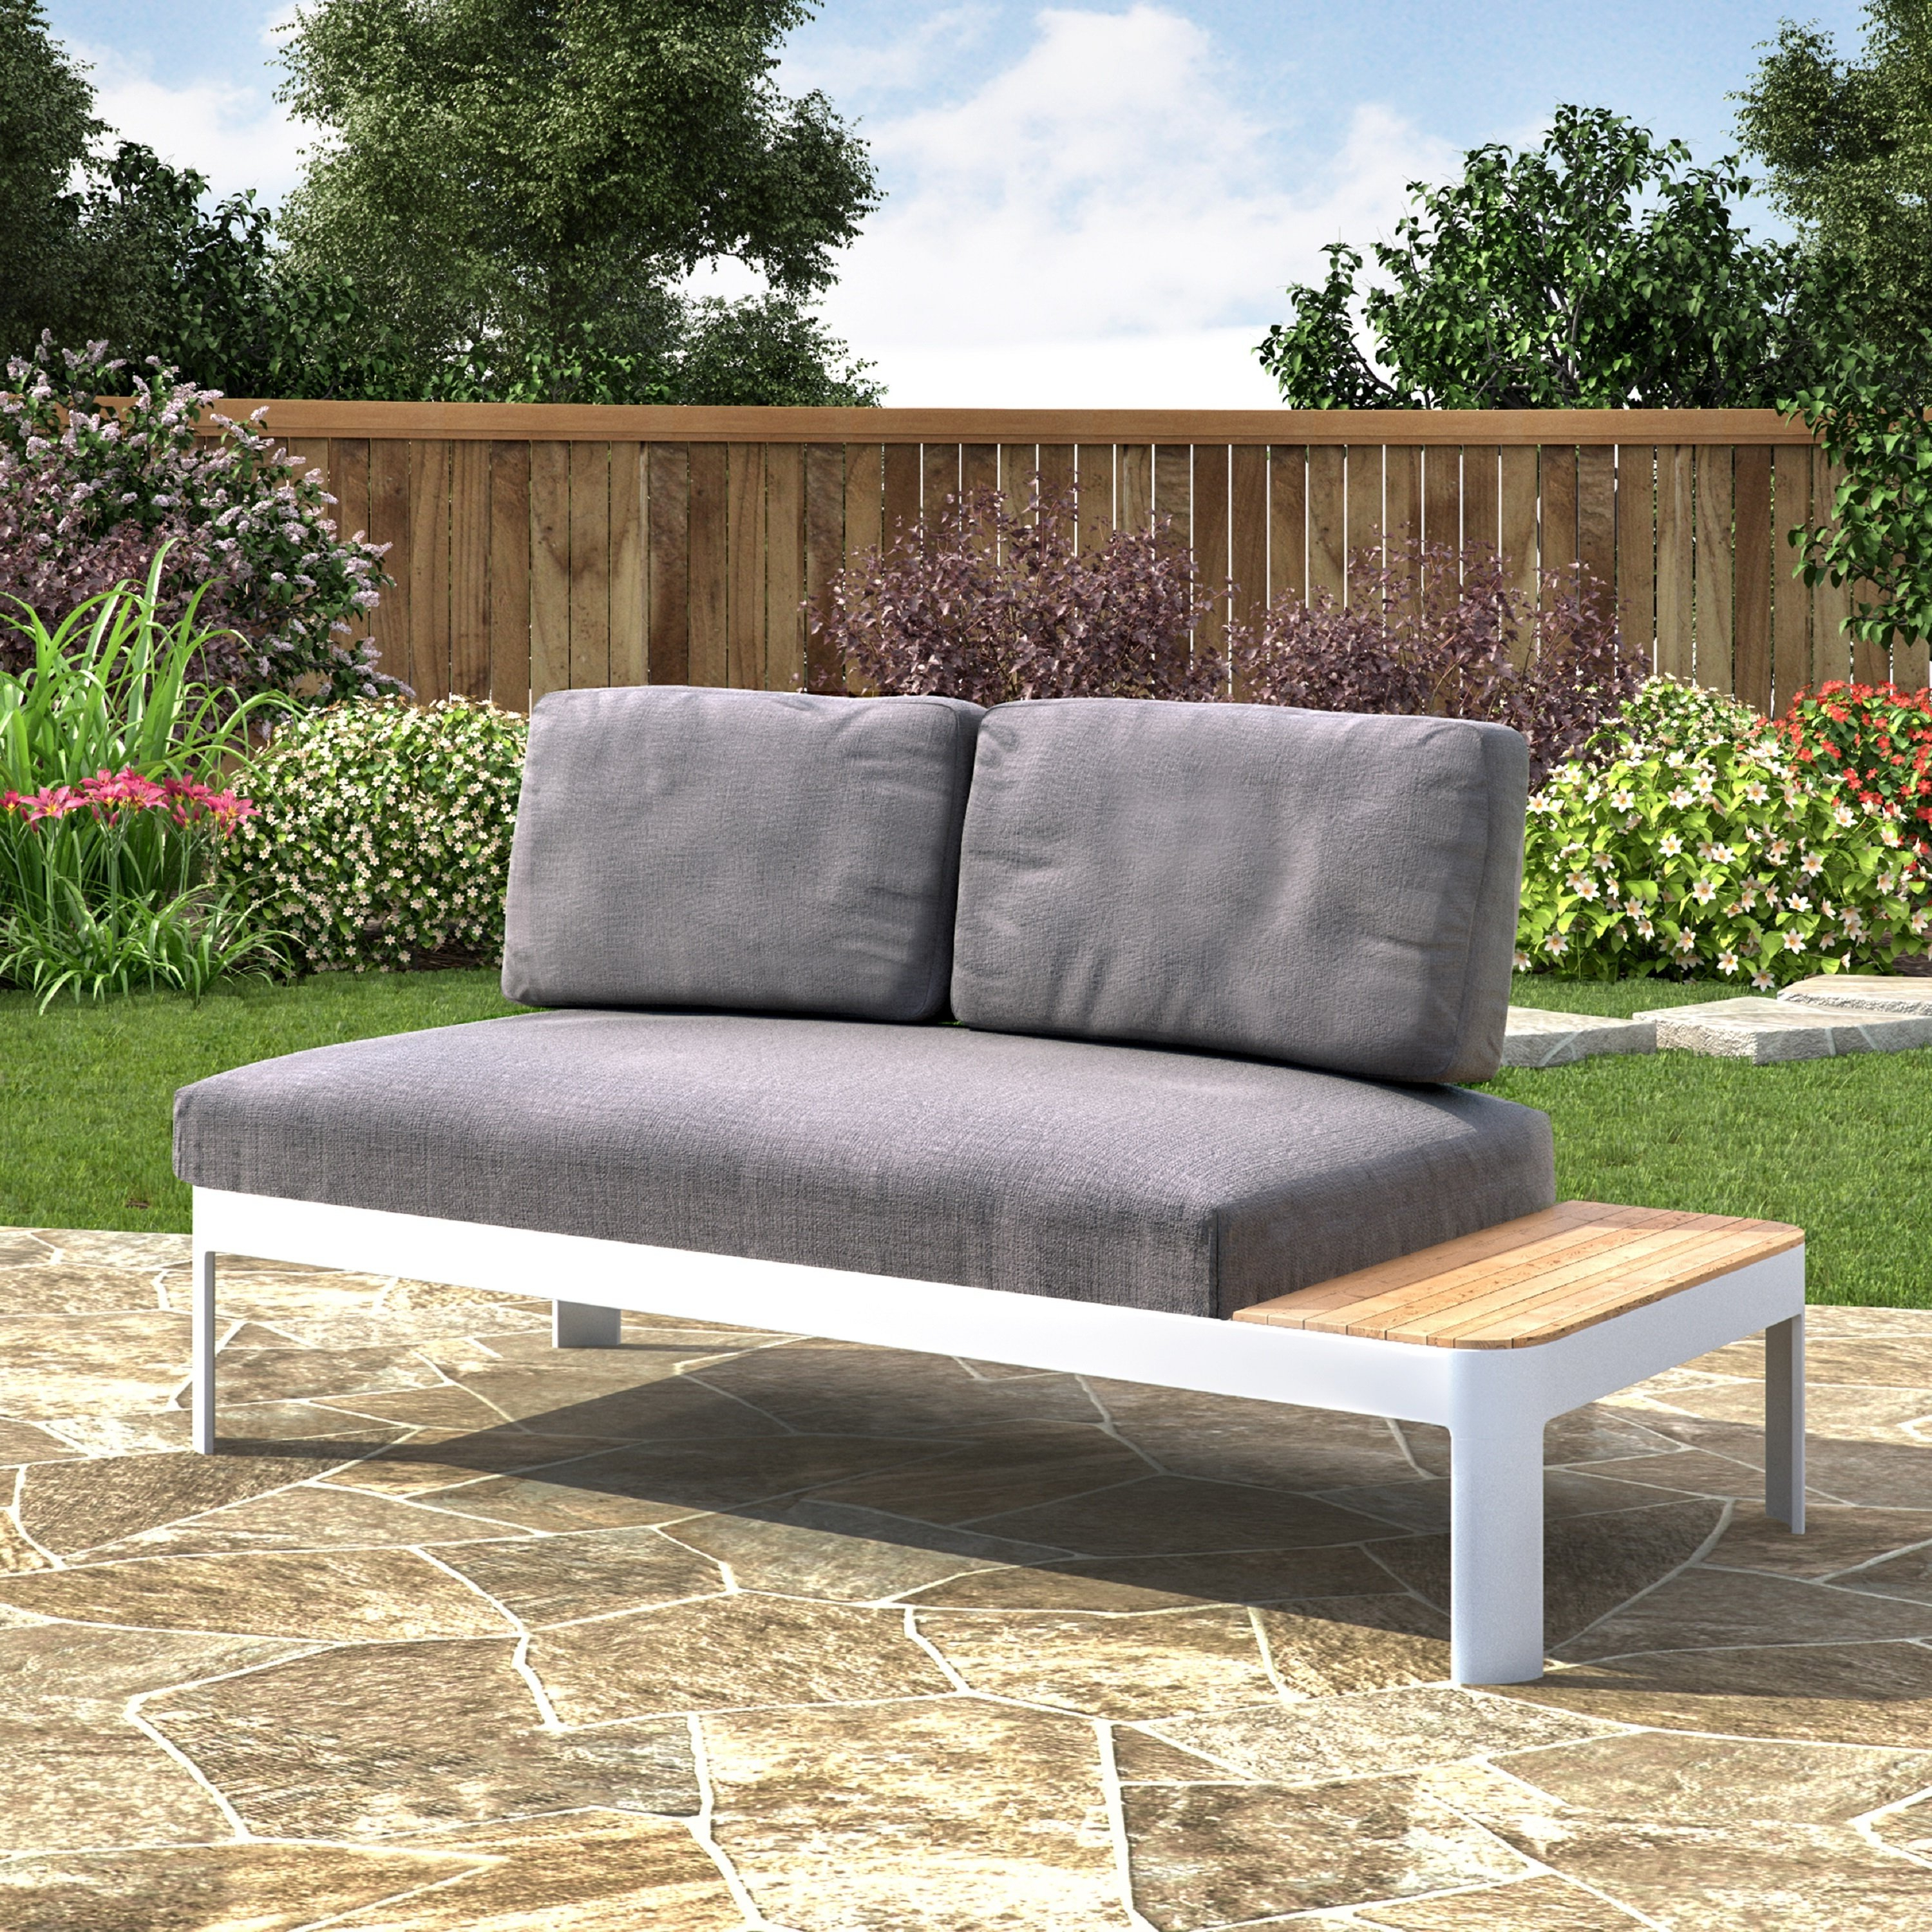 Favorite Harper Down Oversized Sofa Chairs Intended For Shop Harper Blvd Camelia Aluminum Outdoor Convertible Lounger (View 3 of 20)